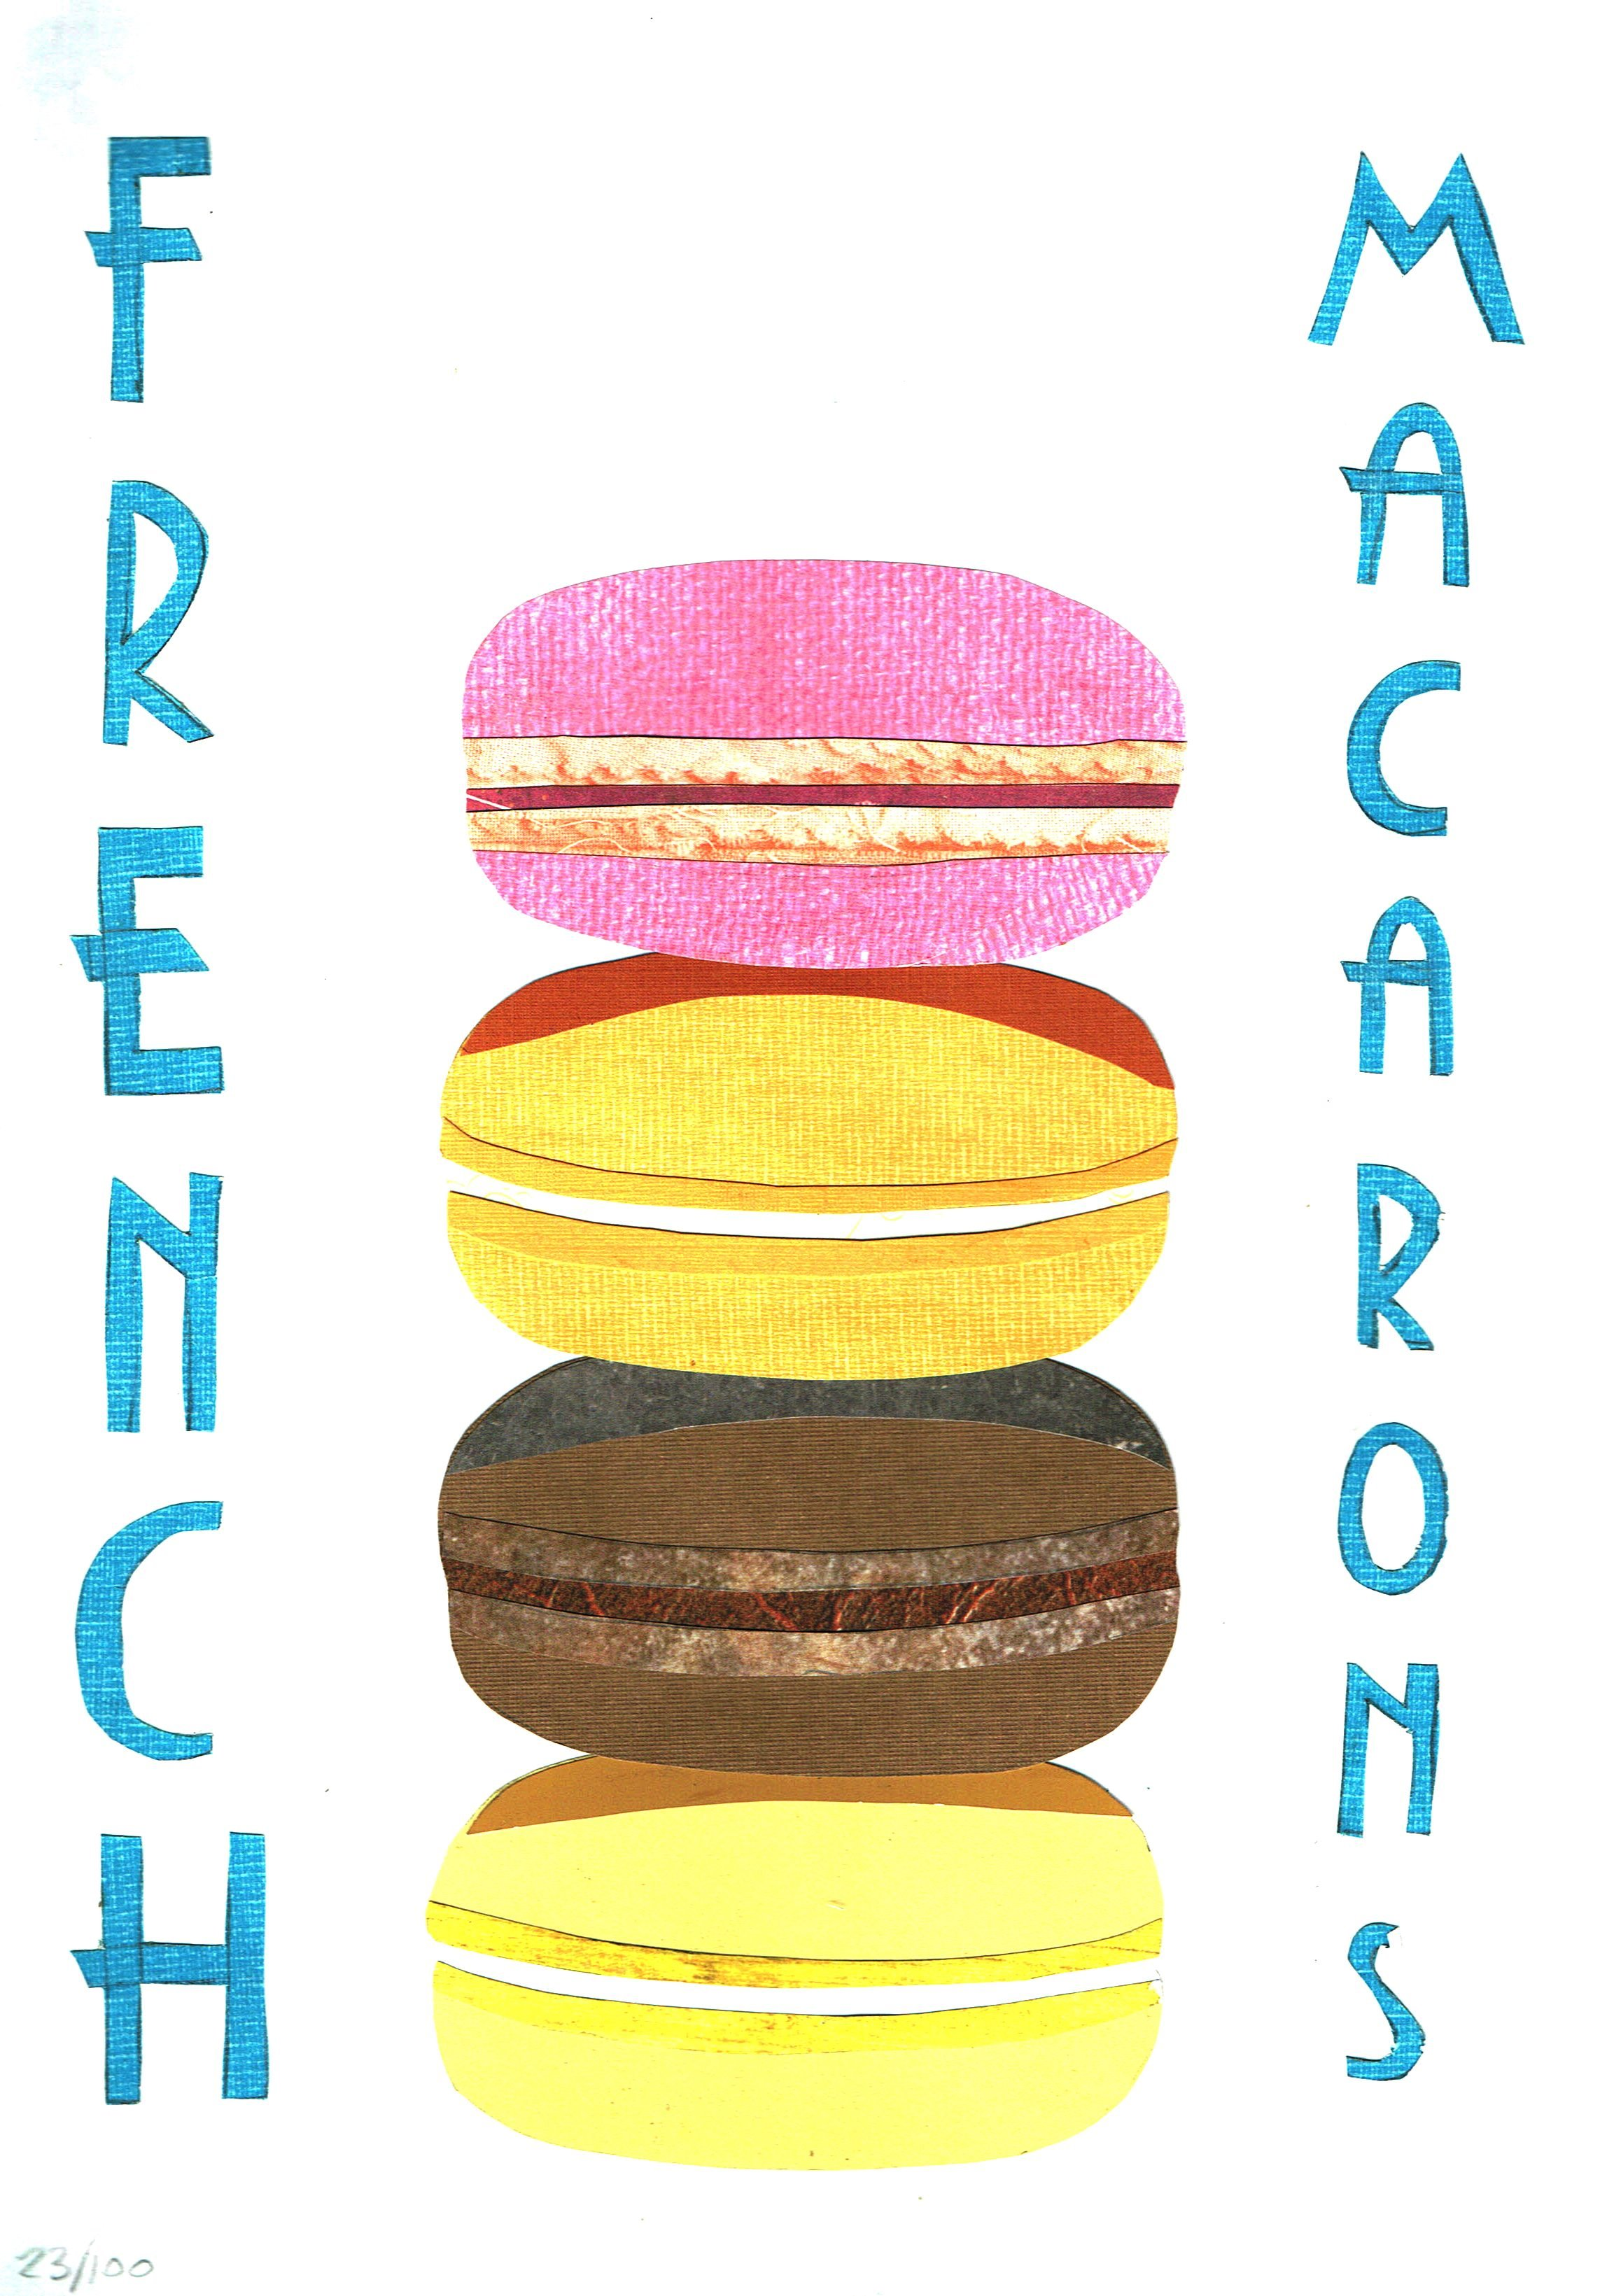 Day 23 - French Macarons